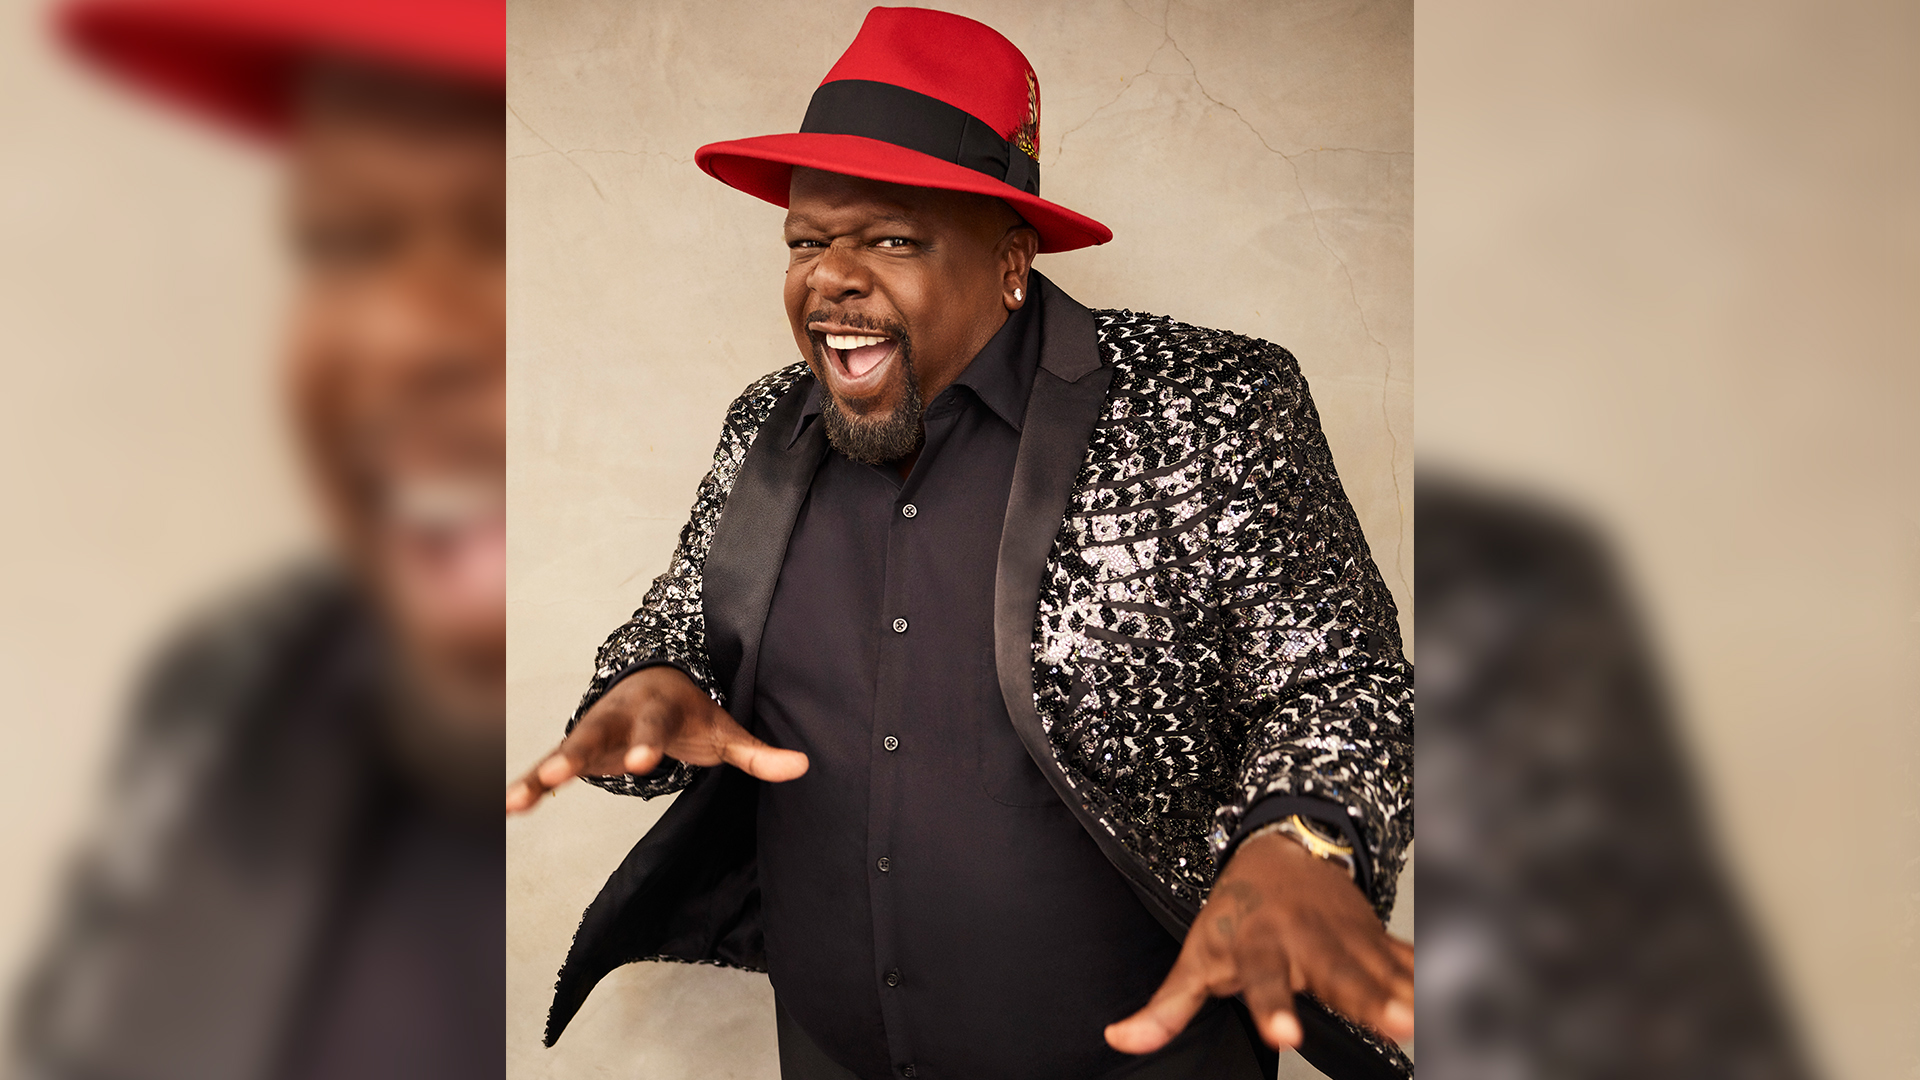 Cedric the Entertainer makes his mark in Tinseltown